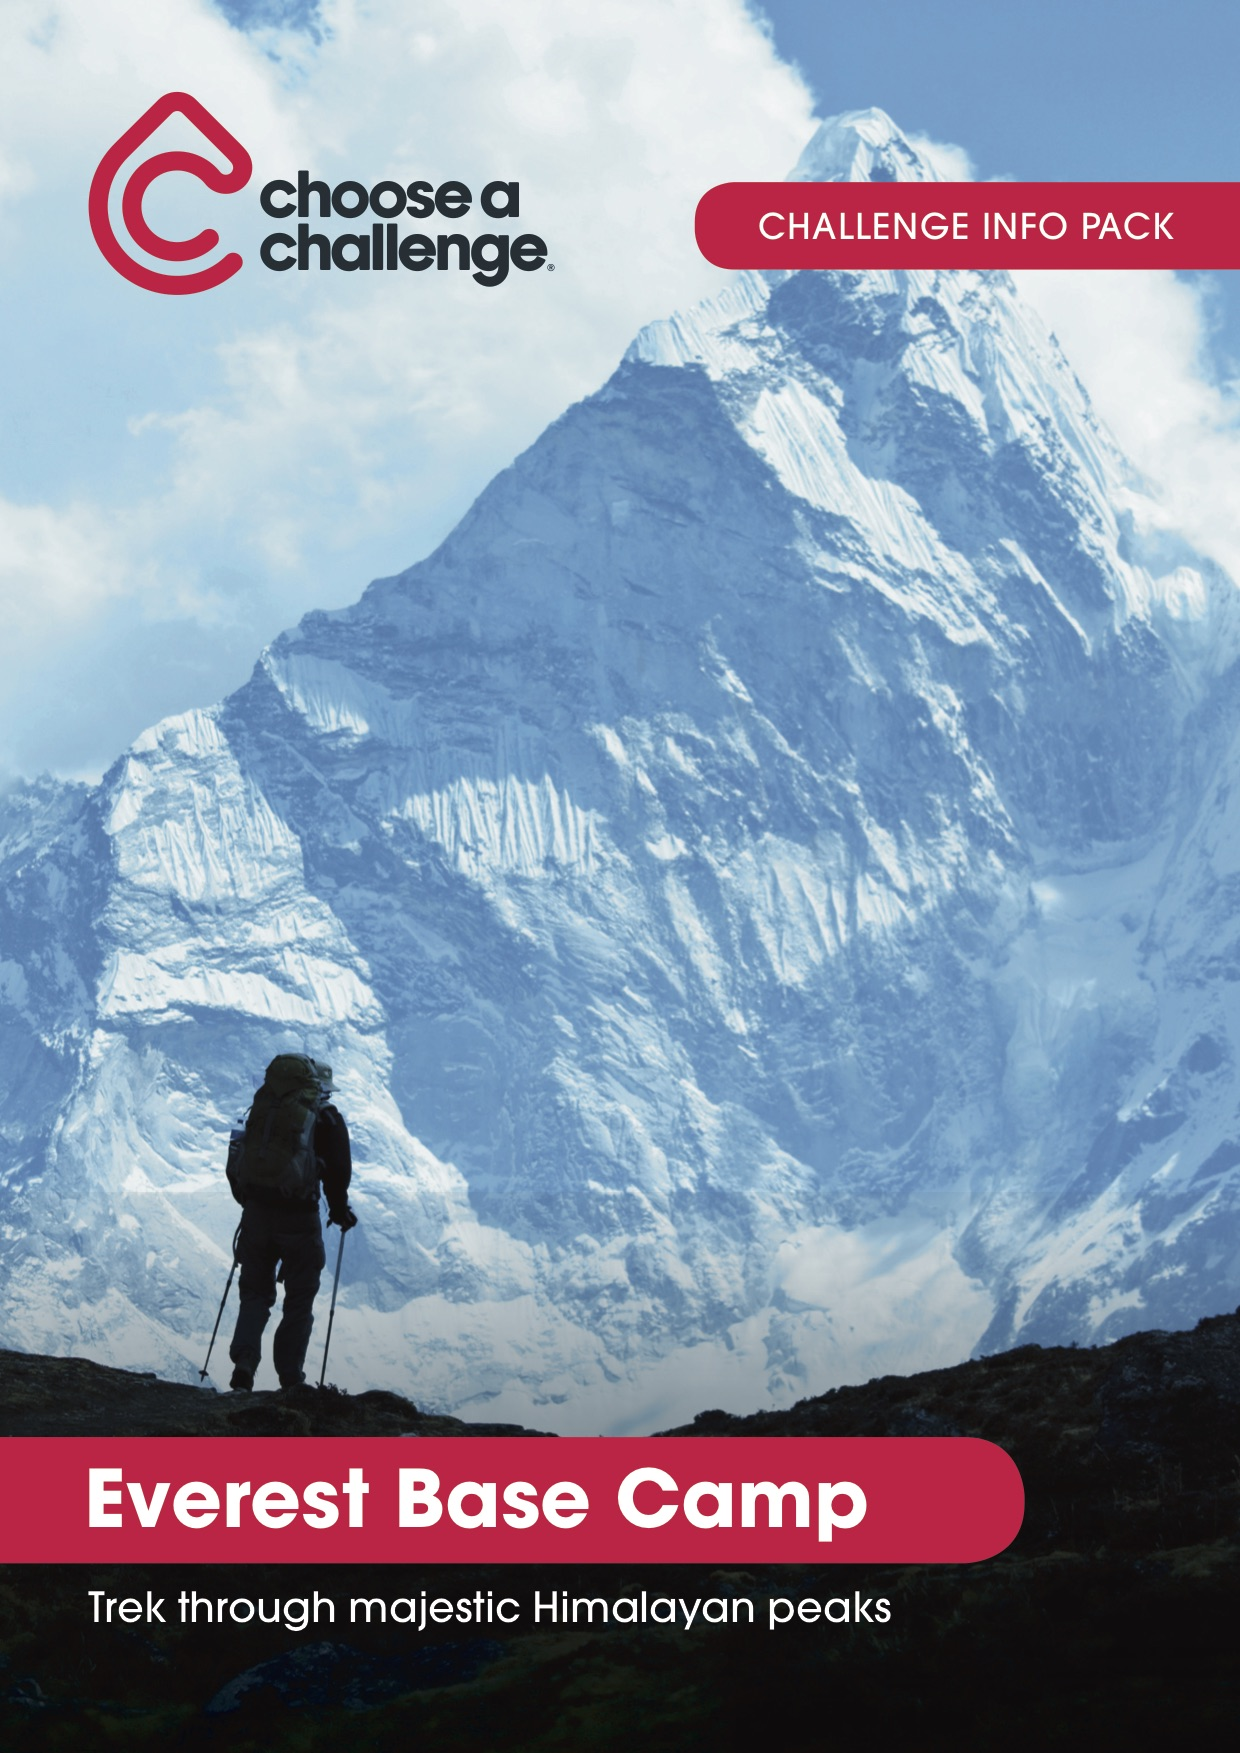 Everest Base Camp - Download the full trip brochure to learn more about your accommodations, pricing and the trip itself